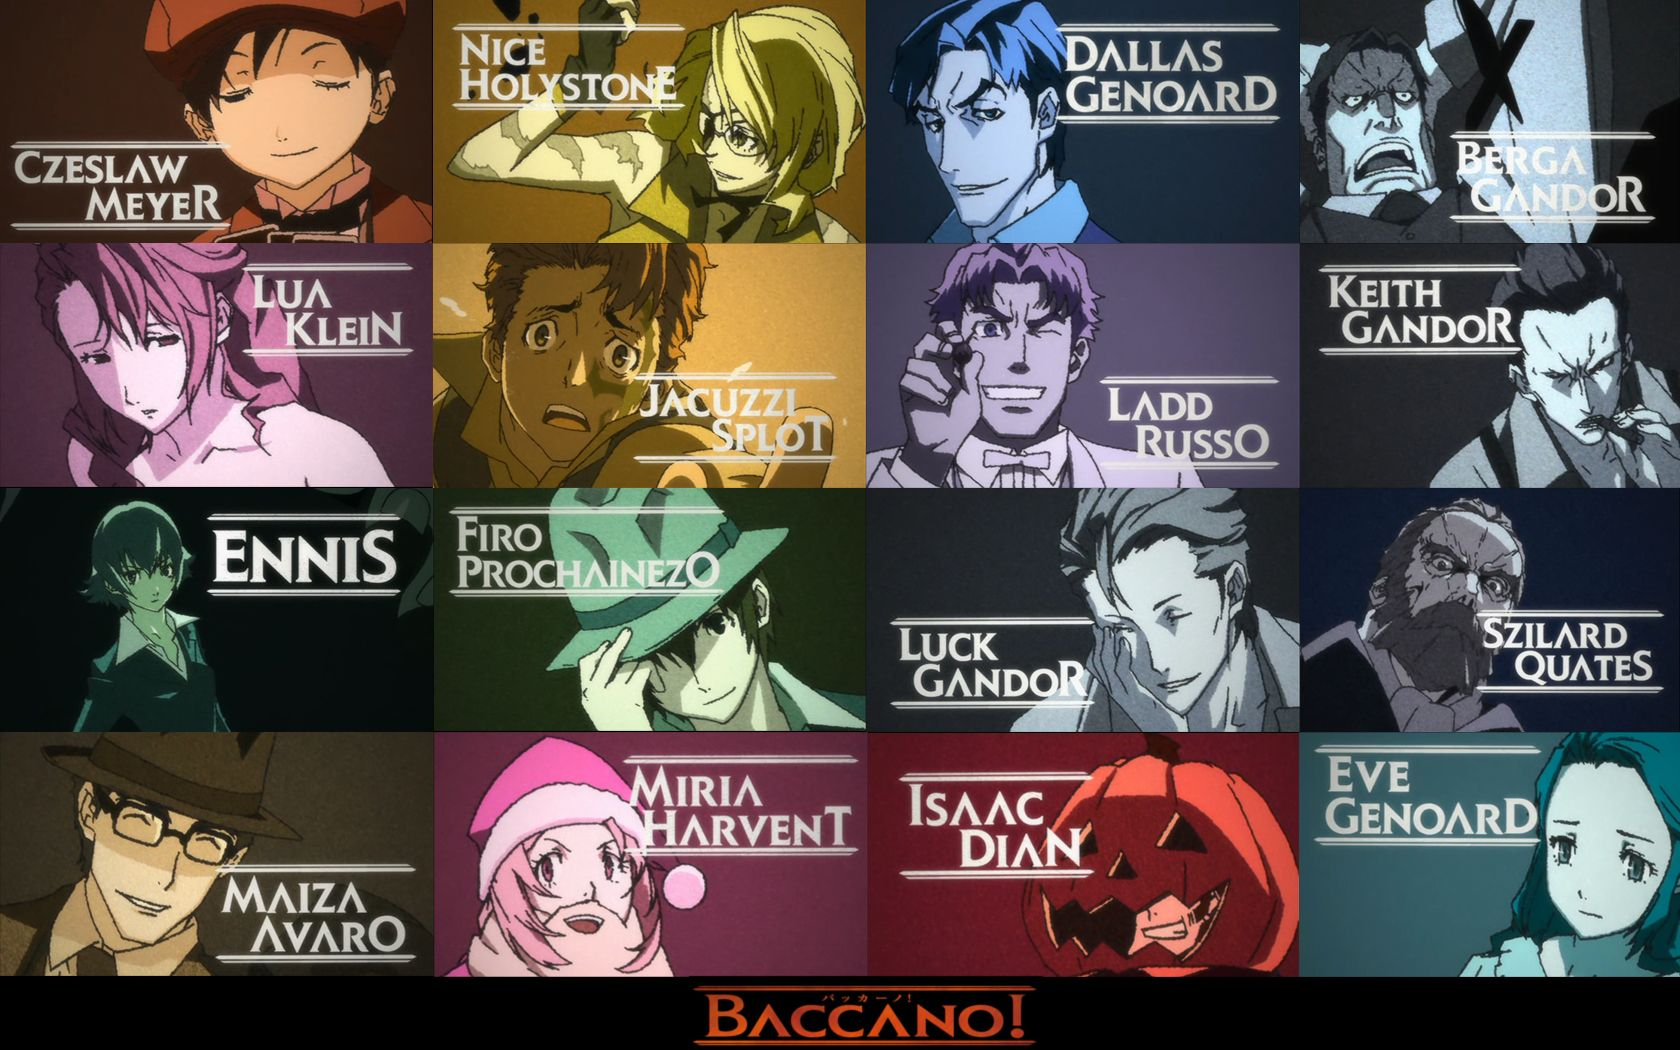 Baccano! - Some of the characters that appear in the opening credits. There are more, but that would be spoilers. Czeslaw Meyer, Nice Holystone, Dallas Genoard, Berga Gandor, Lua Klein, Jacuzzi Splot, Ladd Russo, Keith Gandor, Ennis, Firo Prochainezo, Luck Gandor, Szilard Quates, Maiza Avaro, Miria Harvnet, Issac Dian, and Eve Genoard.